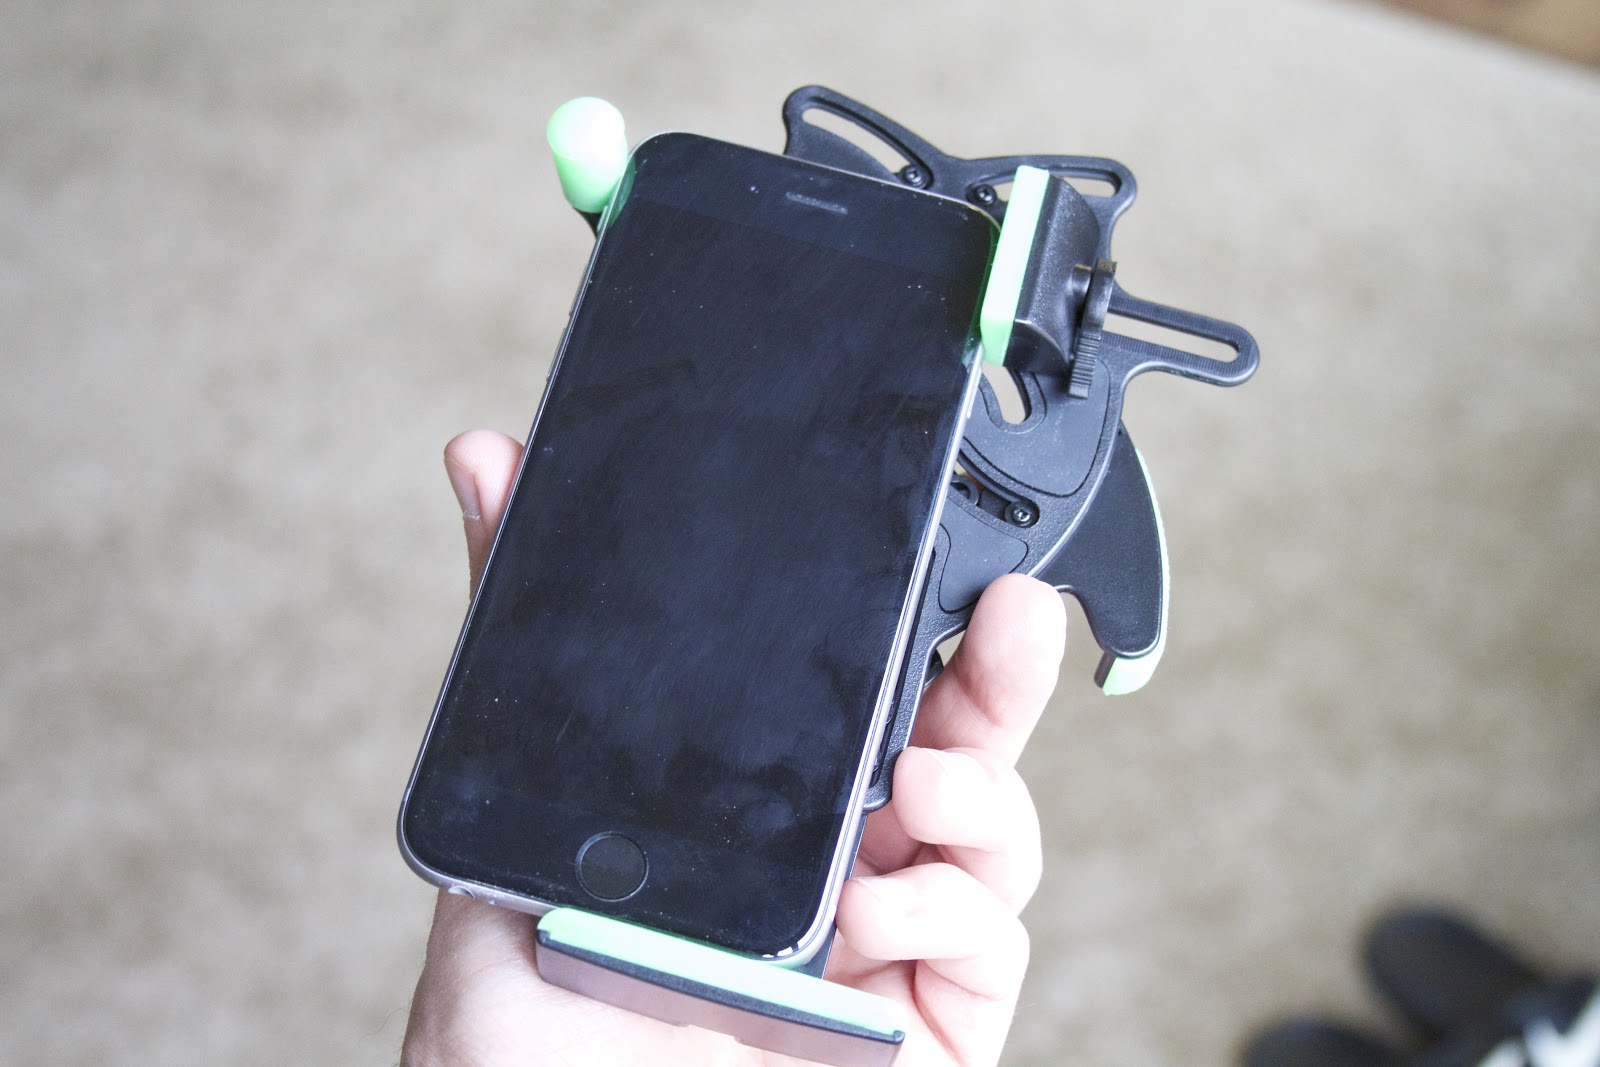 iphone telescope adapter mount